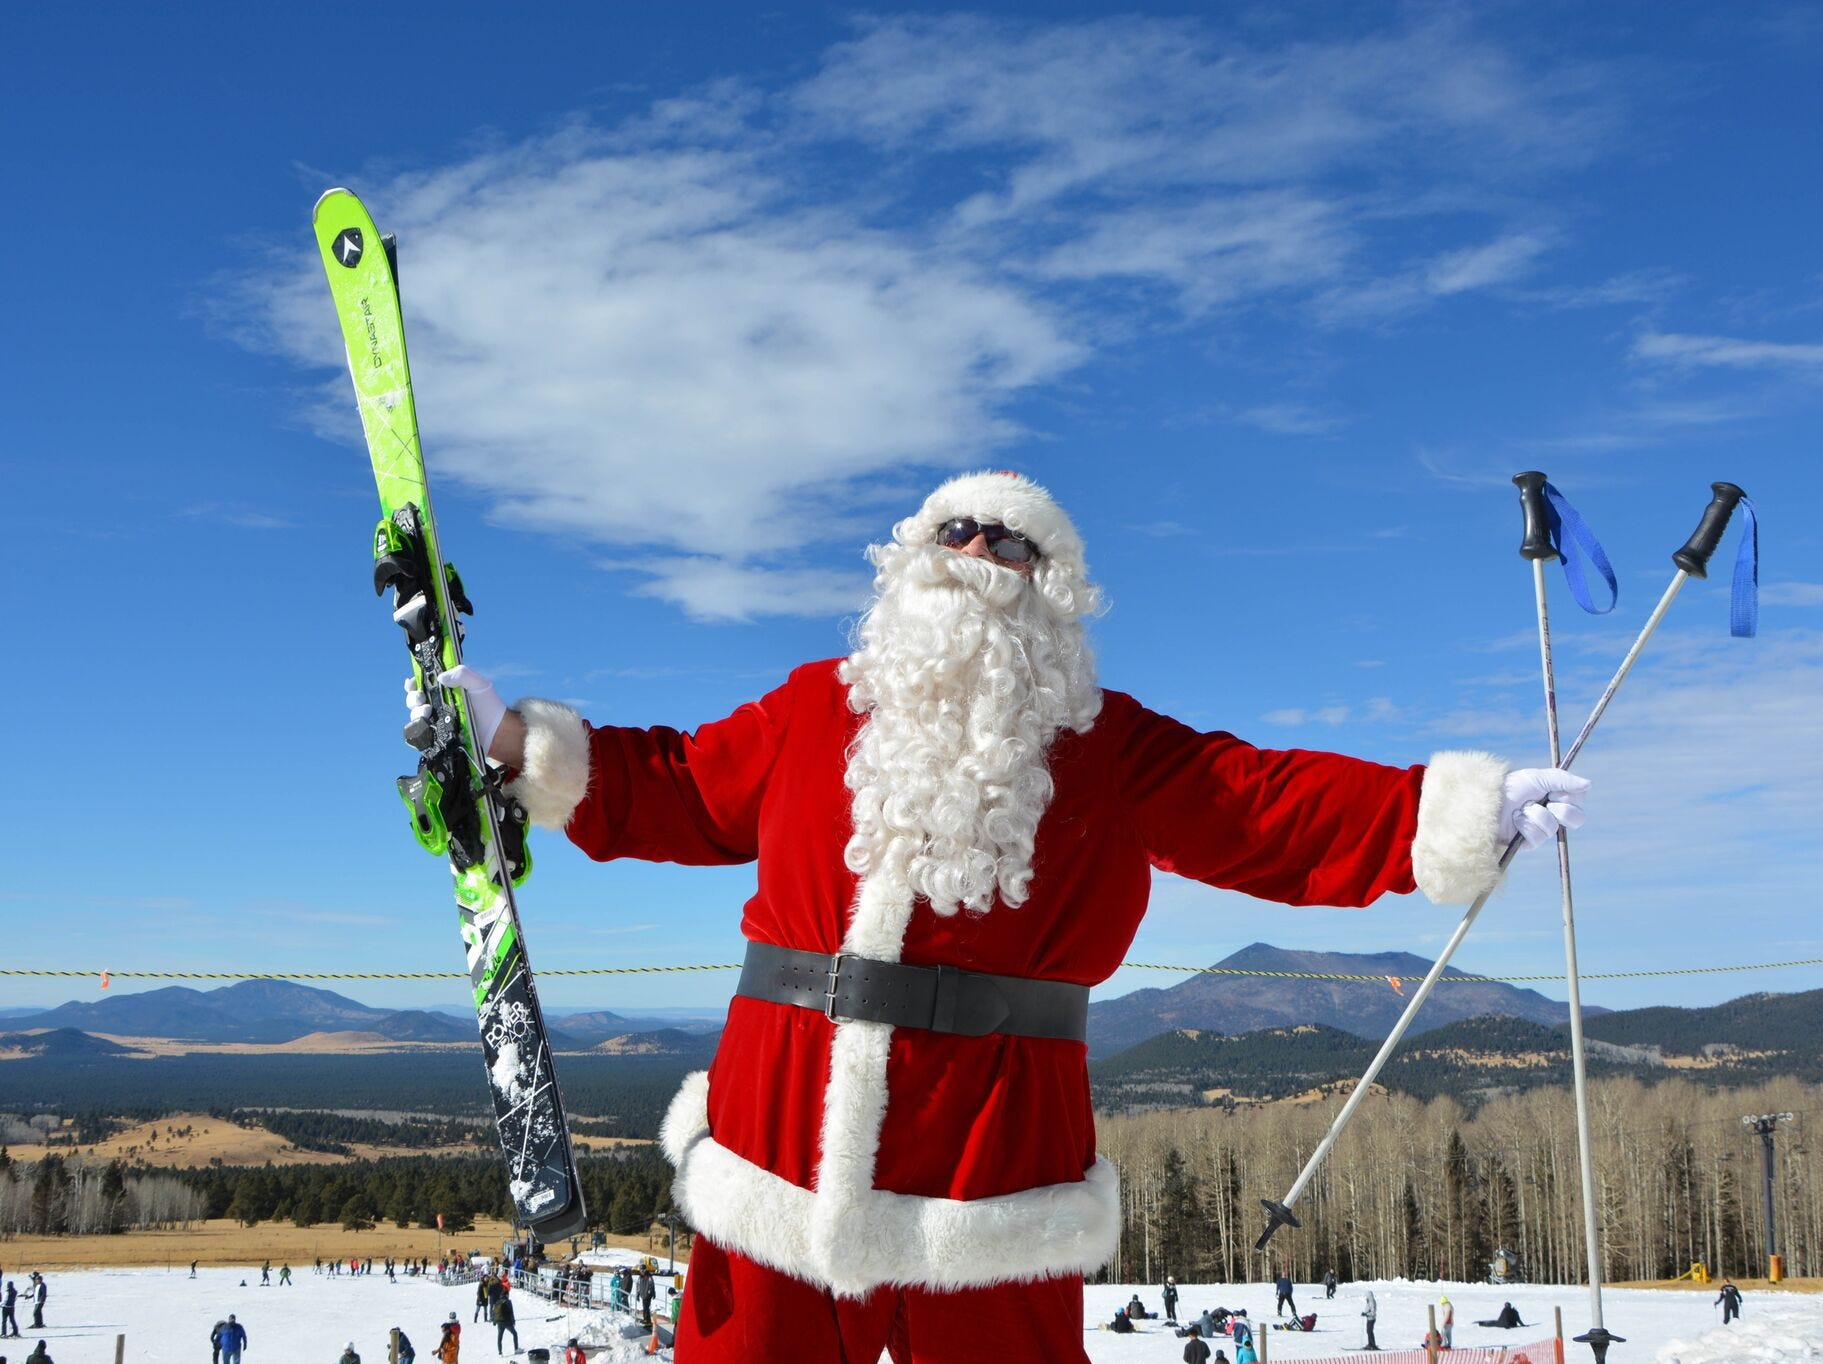 Skiing Santa will be hitting the slopes at Arizona Snowbowl on Dec. 22-24, 2018. Santa will ski the Big Spruce and Little Spruce runs at the ski resort near Flagstaff.